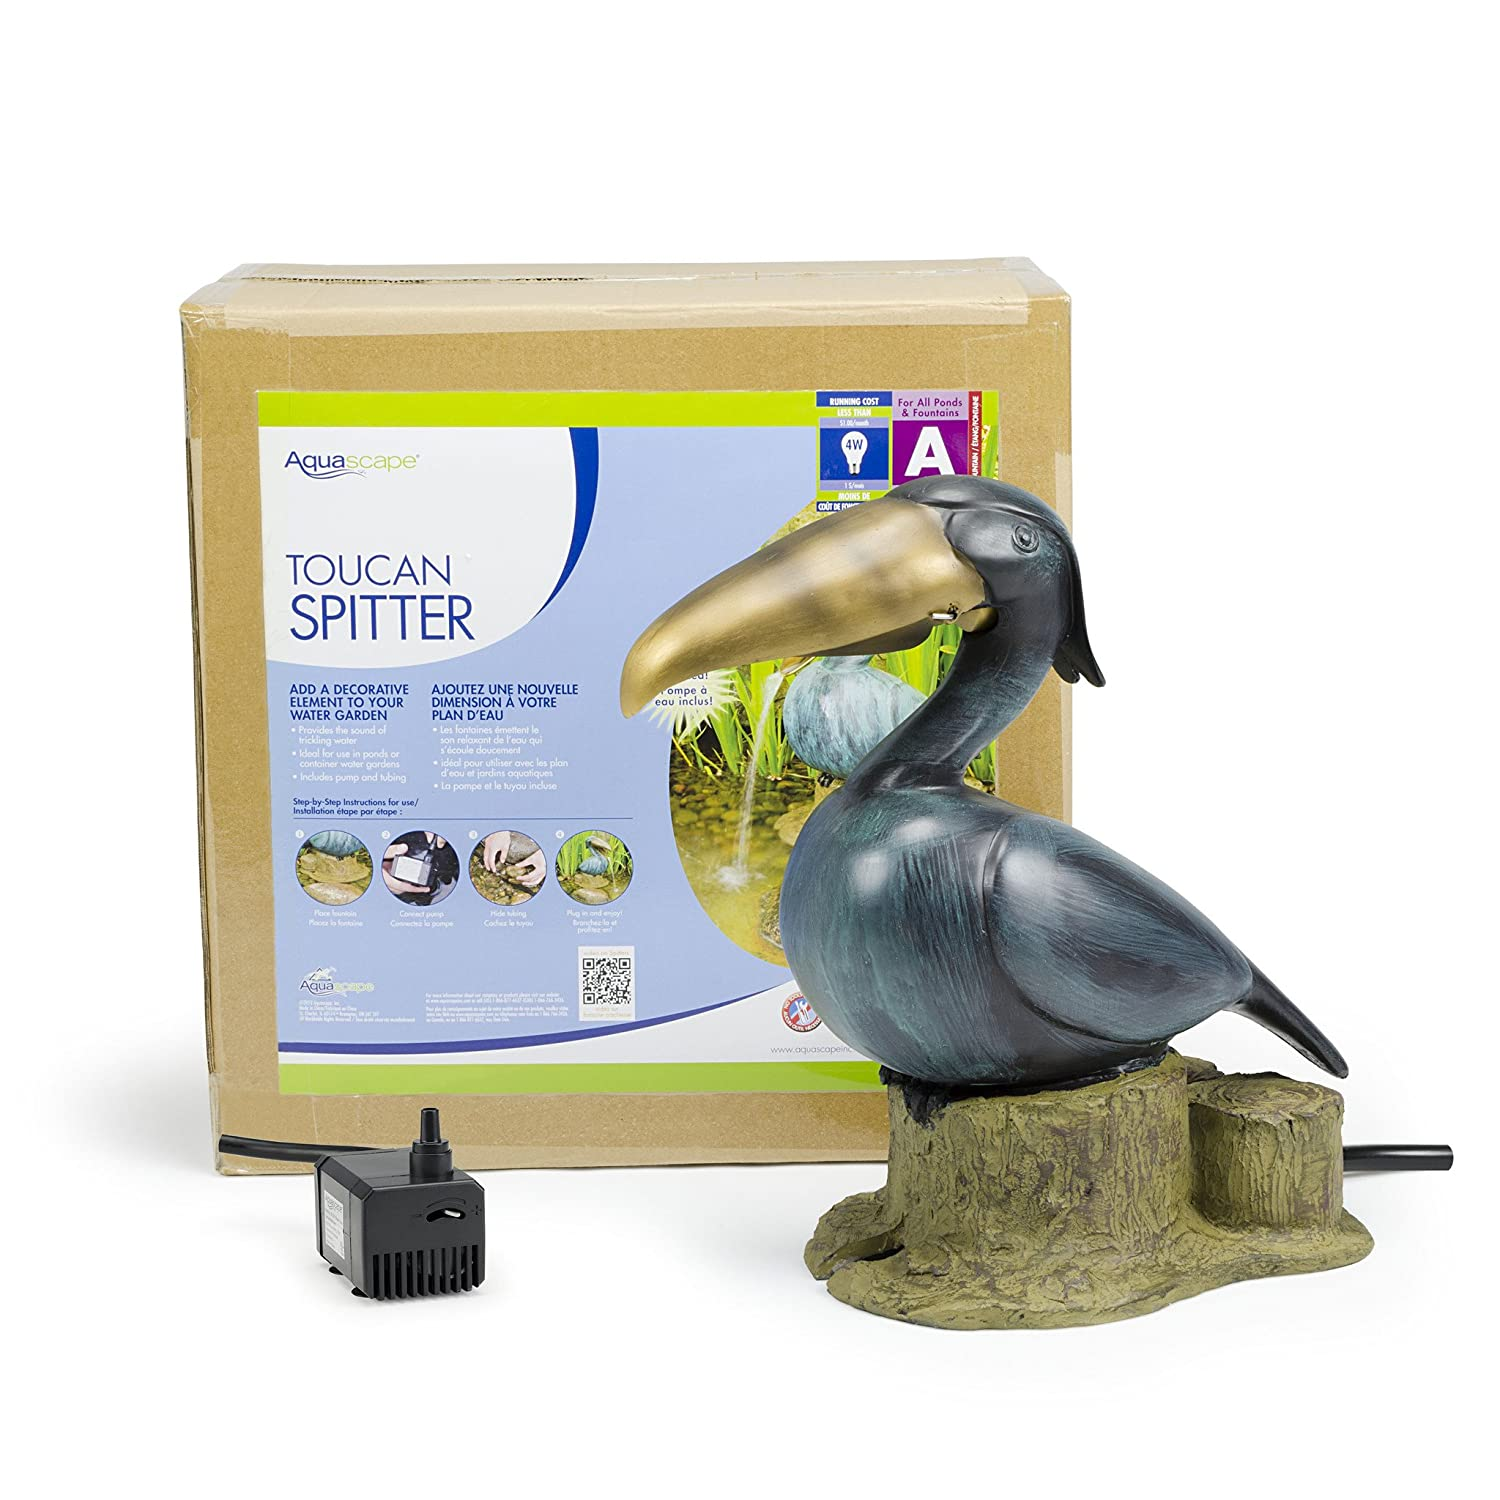 Aquascape Toucan Fountain Spitter for Pond Bird Garden 78011 Landscape and Water Features